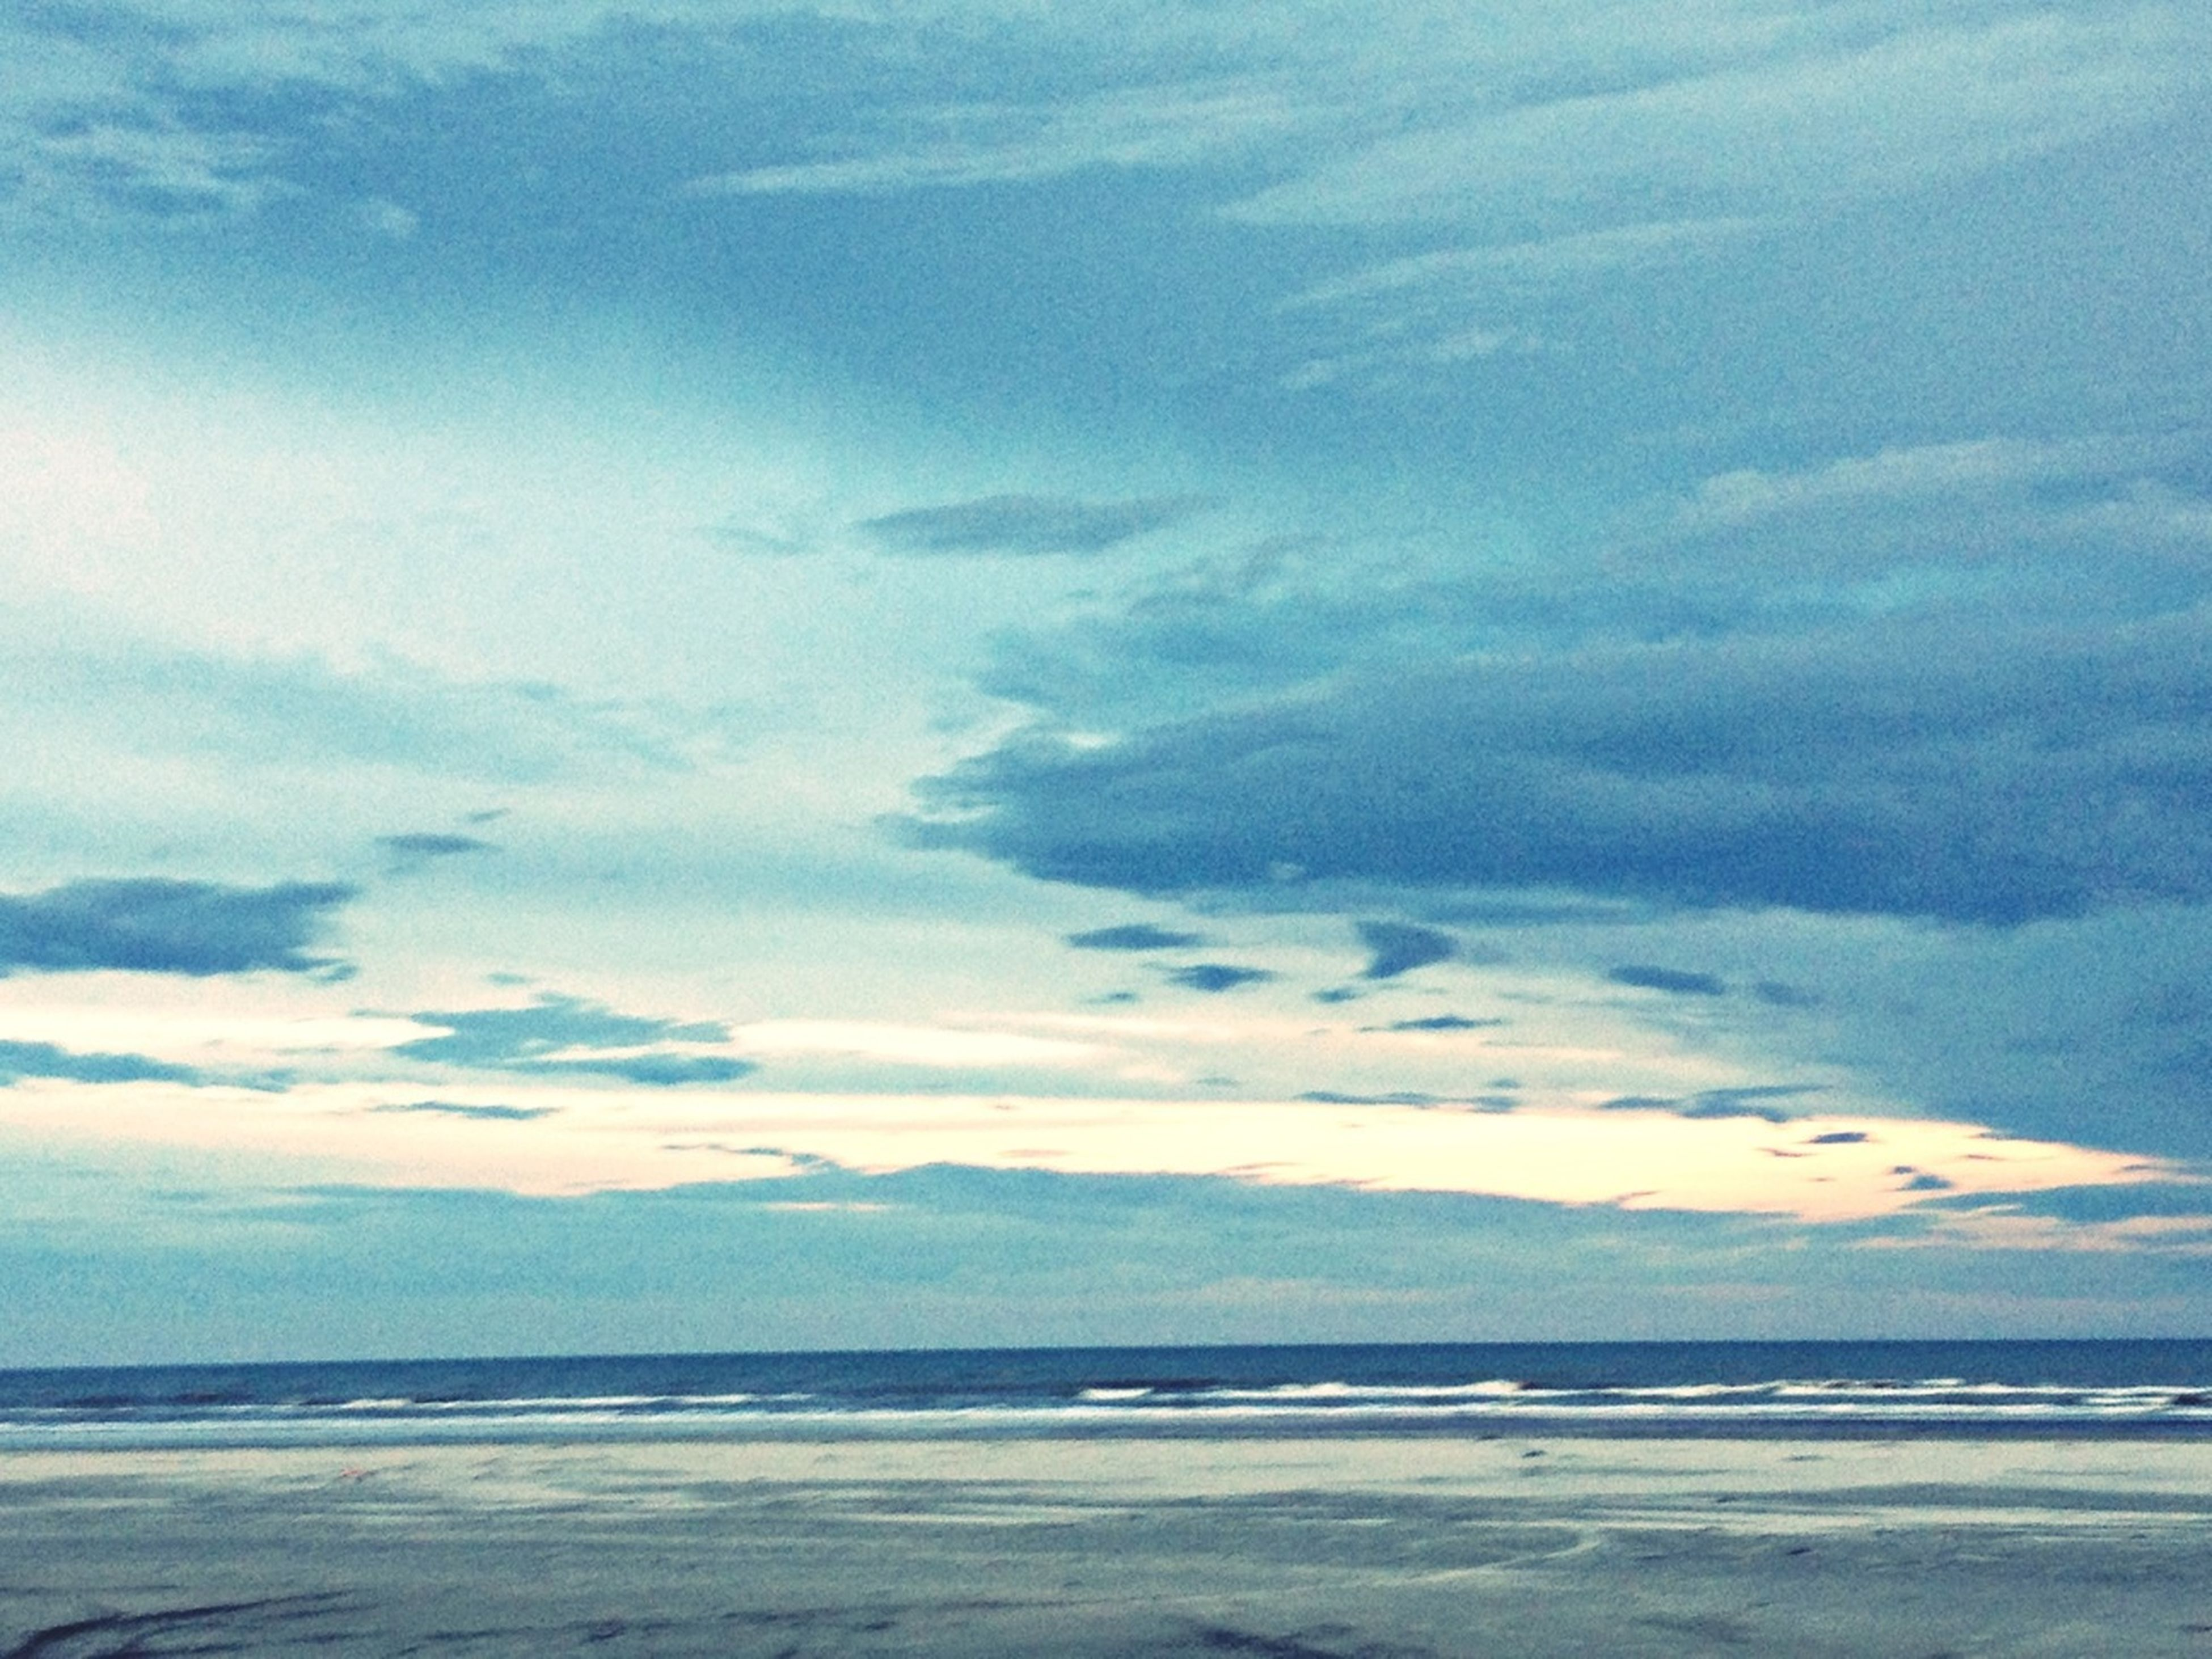 sea, beach, water, tranquil scene, sky, tranquility, scenics, shore, beauty in nature, sand, horizon over water, nature, cloud - sky, idyllic, cloud, coastline, cloudy, remote, non-urban scene, outdoors